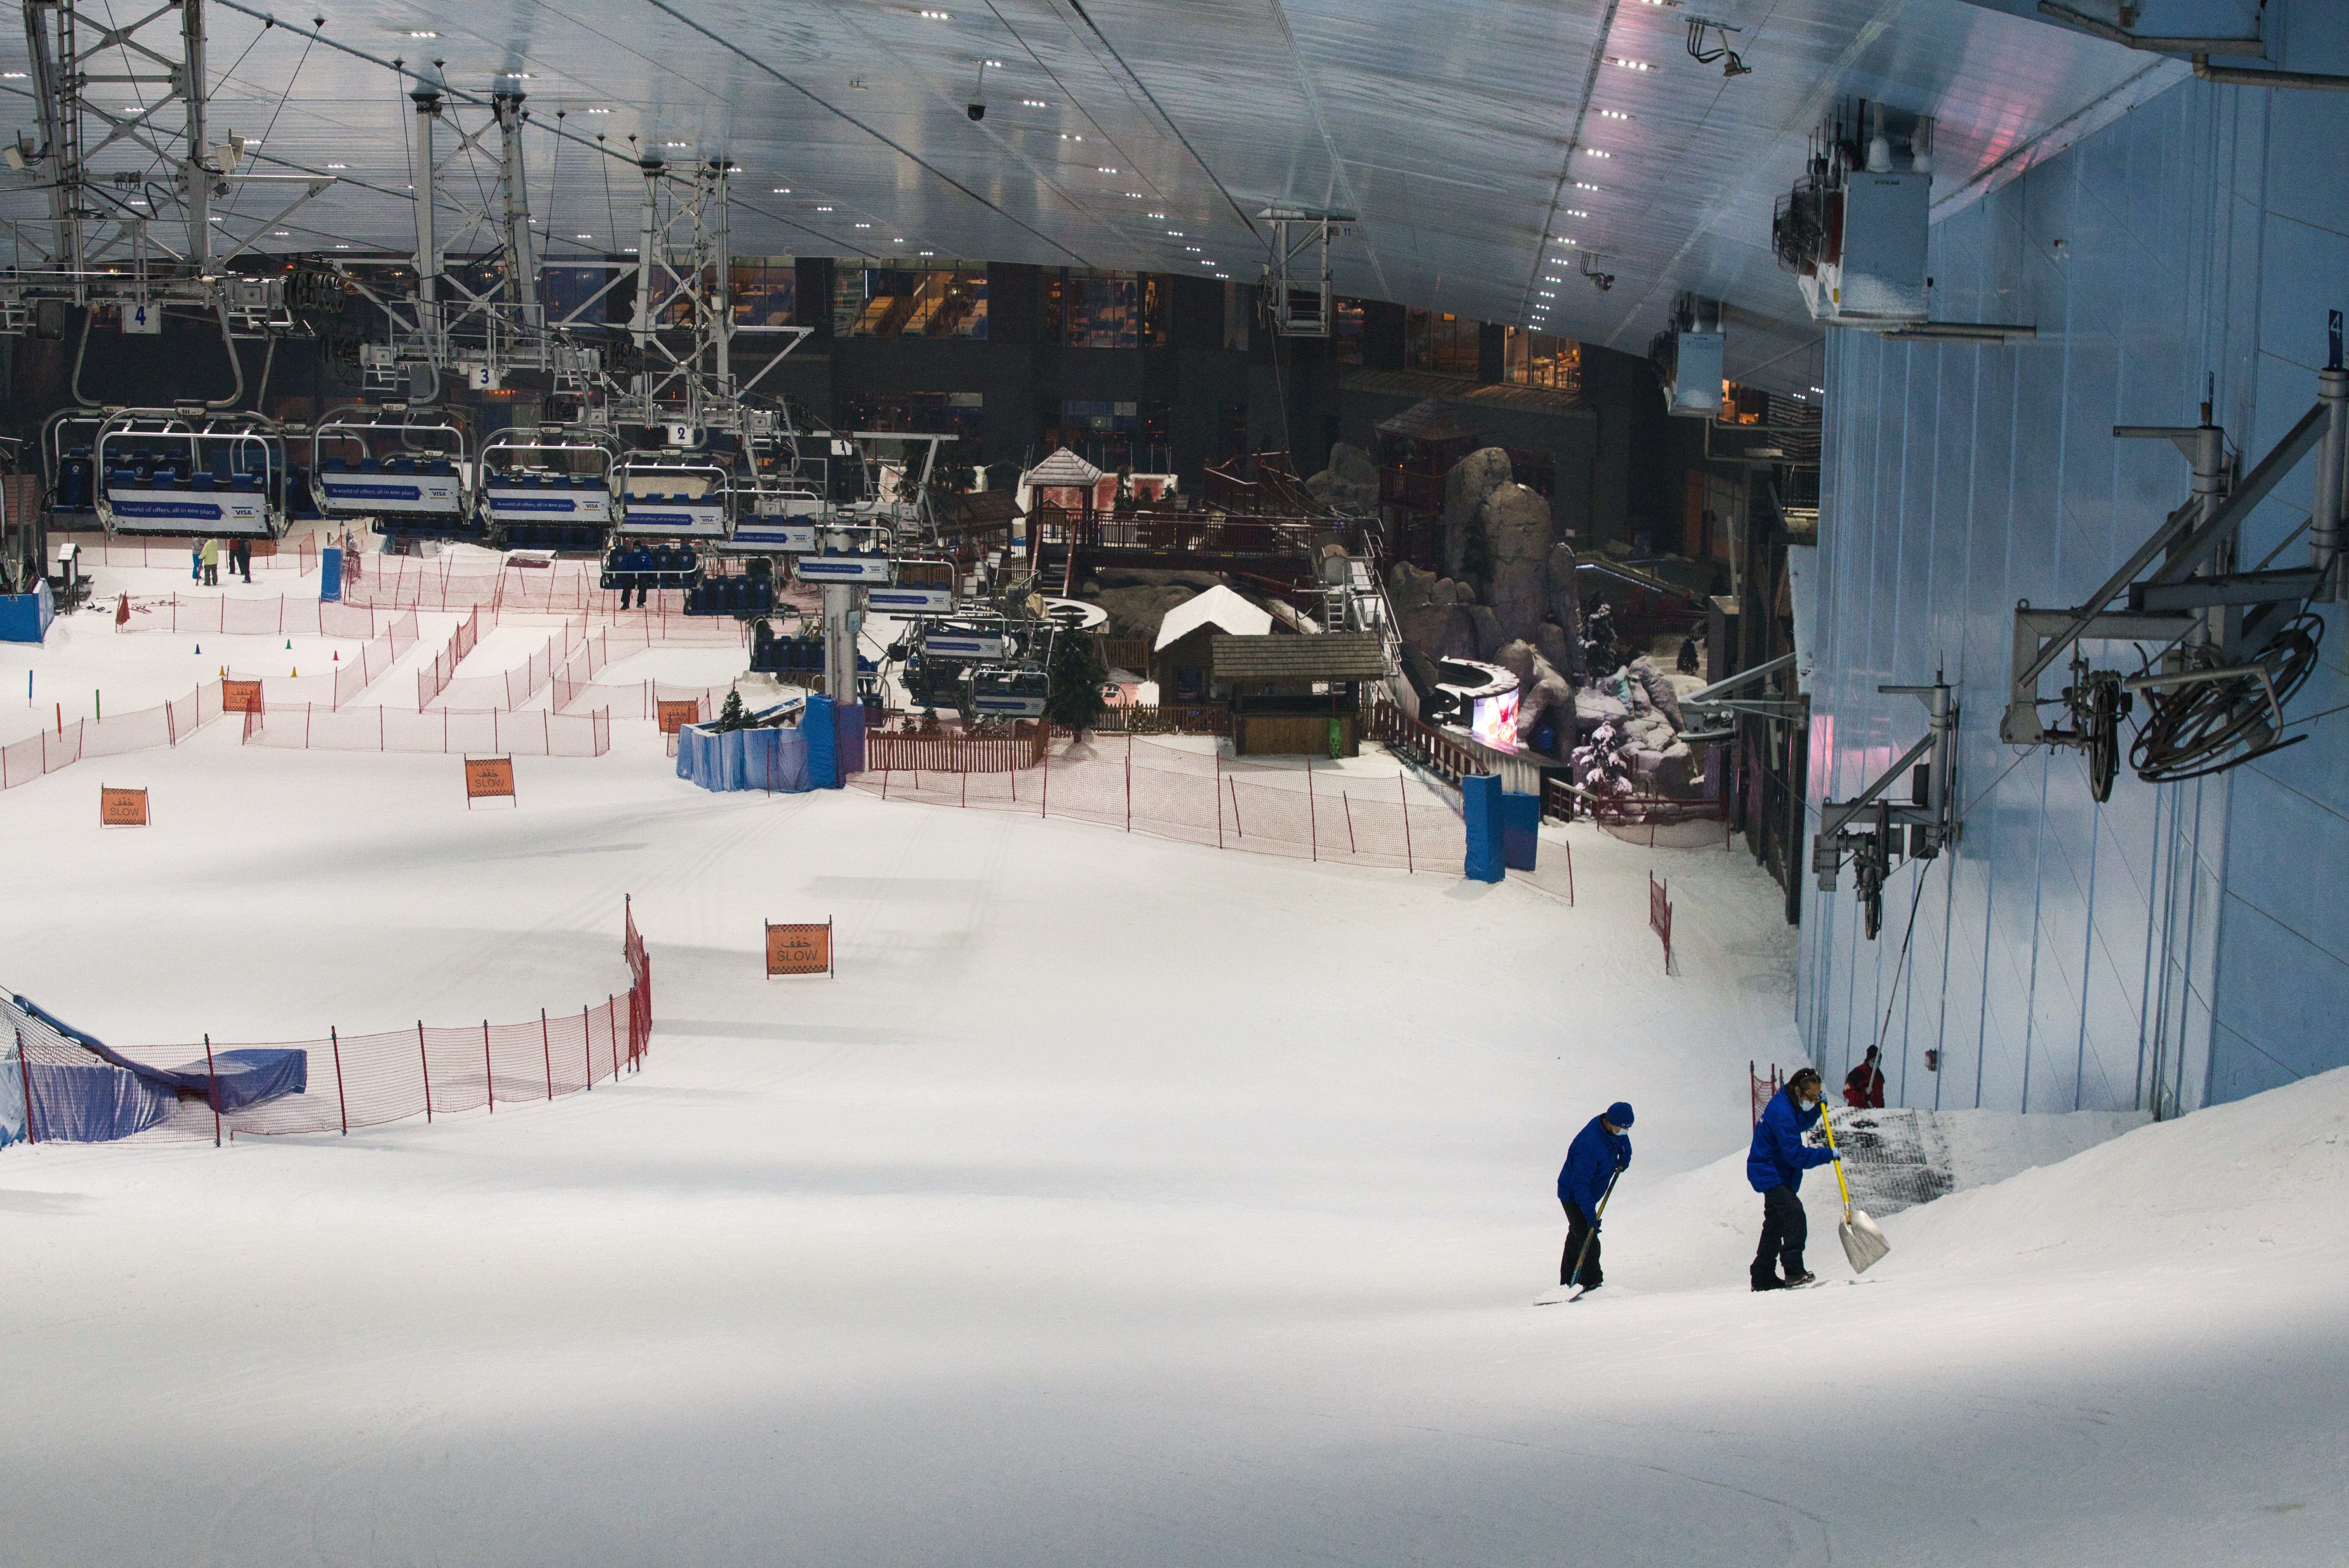 Two employees of Ski Dubai pack snow at Mall of the Emirates in Dubai, United Arab Emirates, Wednesday, May 27, 2020. Dubai on Wednesday loosed its restrictions imposed over the coronavirus pandemic, allowing movie theaters and other attractions to operate. (AP Photo/Jon Gambrell)